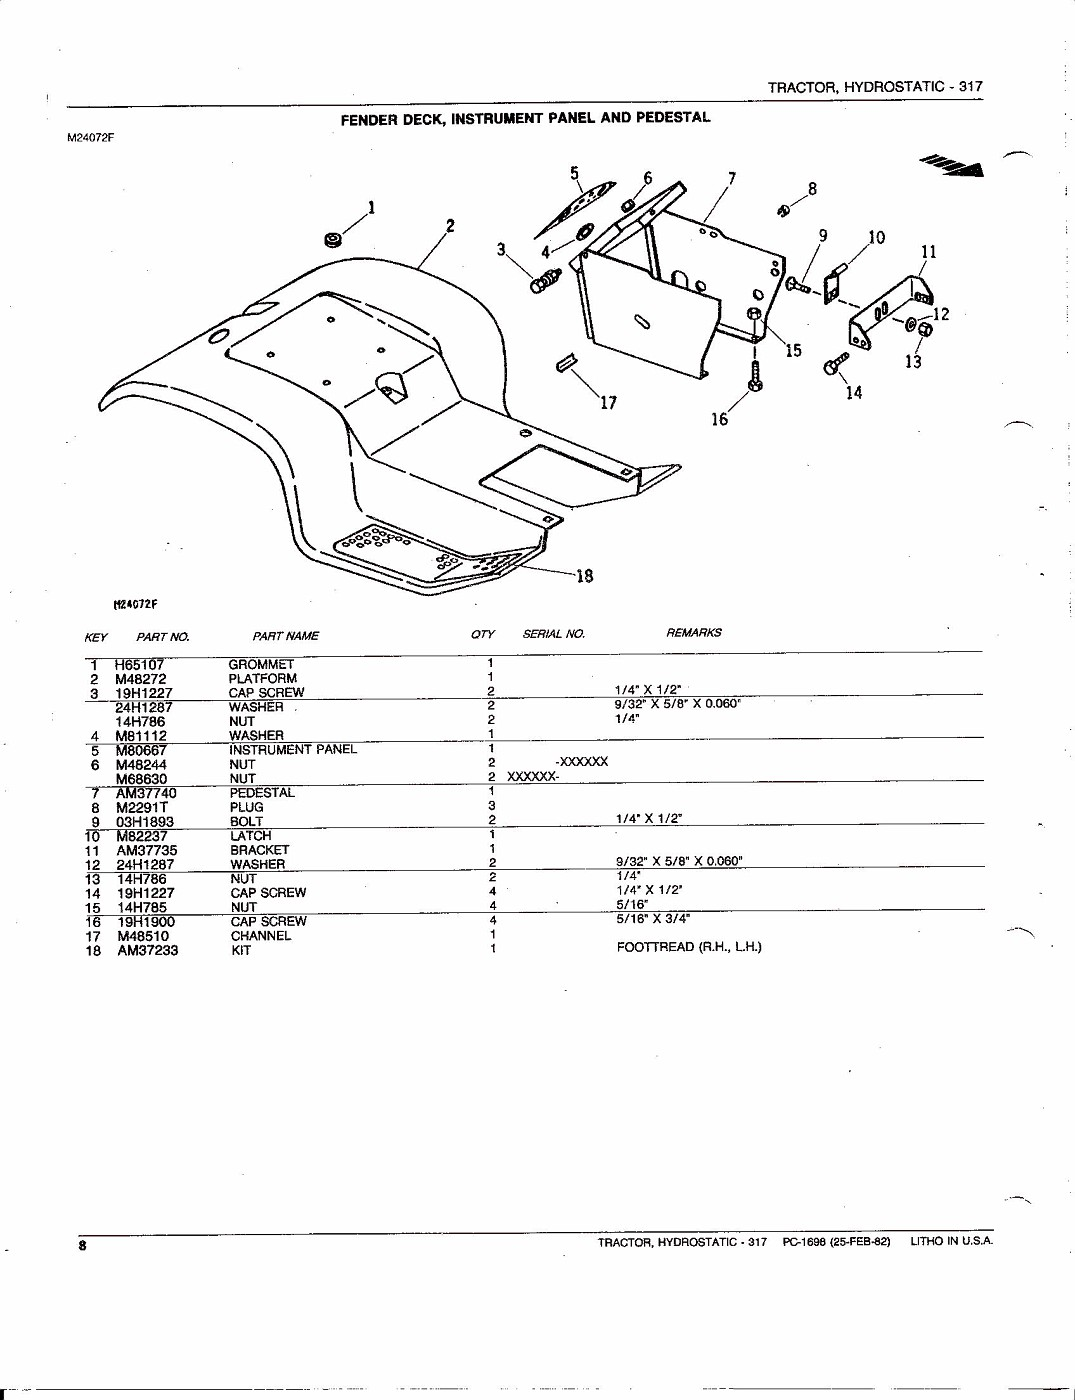 photo  john deere 317 hydrostatic tractor parts catalog